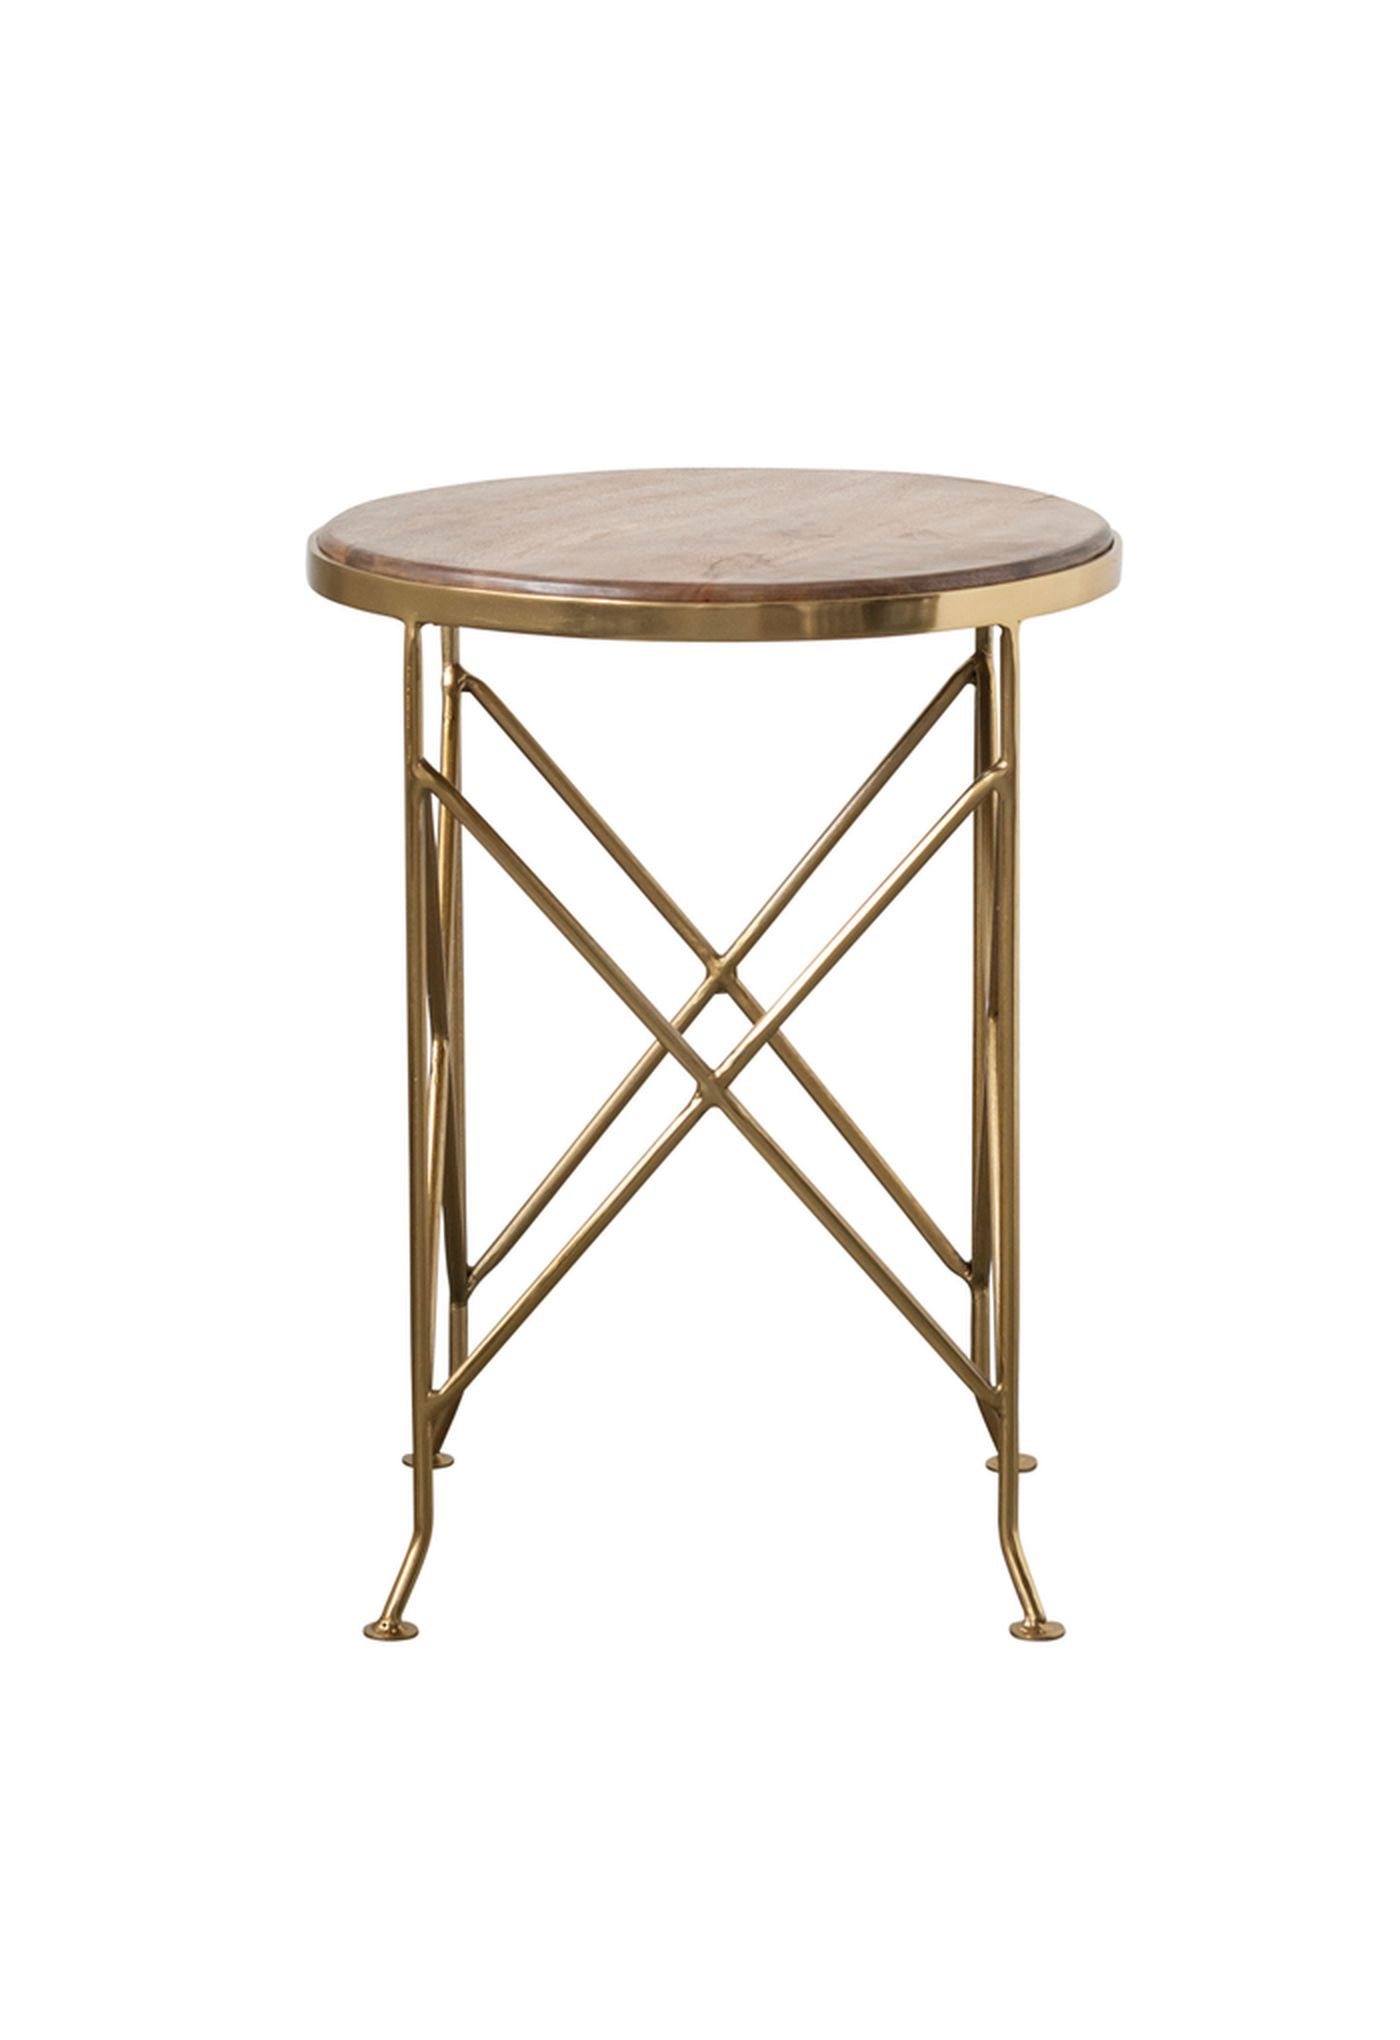 Credele Modern Metal Side Table In 2021 Table Decor Living Room Side Table Decor Side Table Decor Living Room